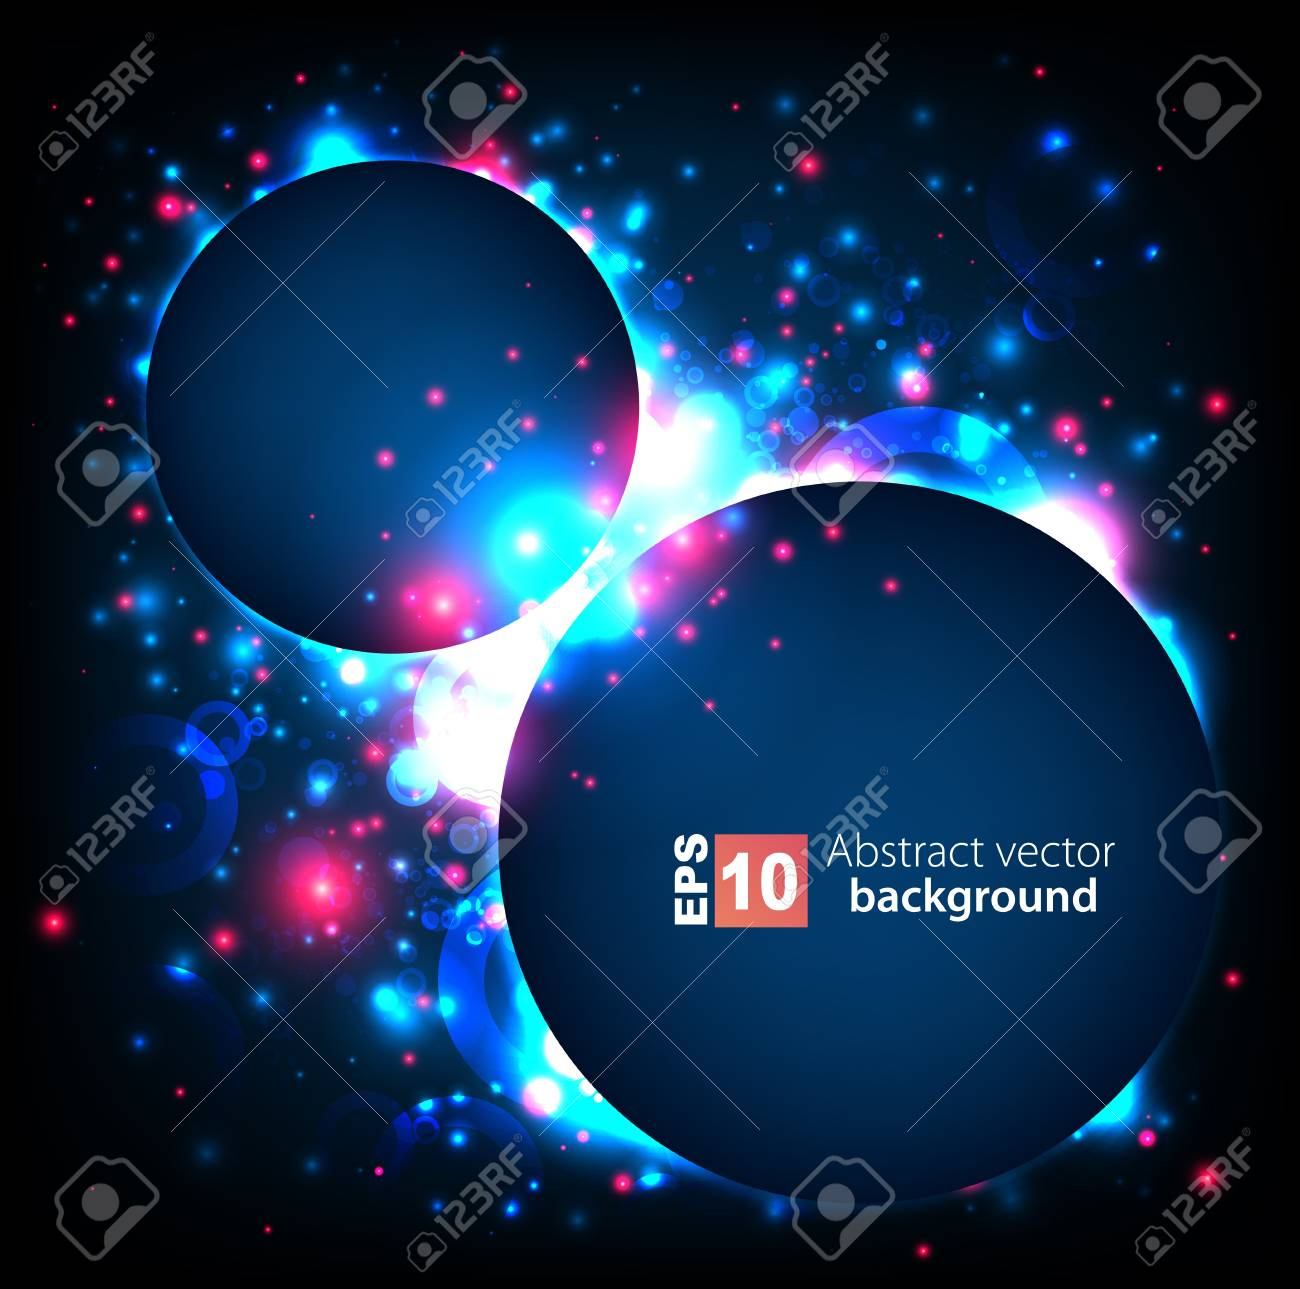 Abstract space background Stock Vector - 14134325